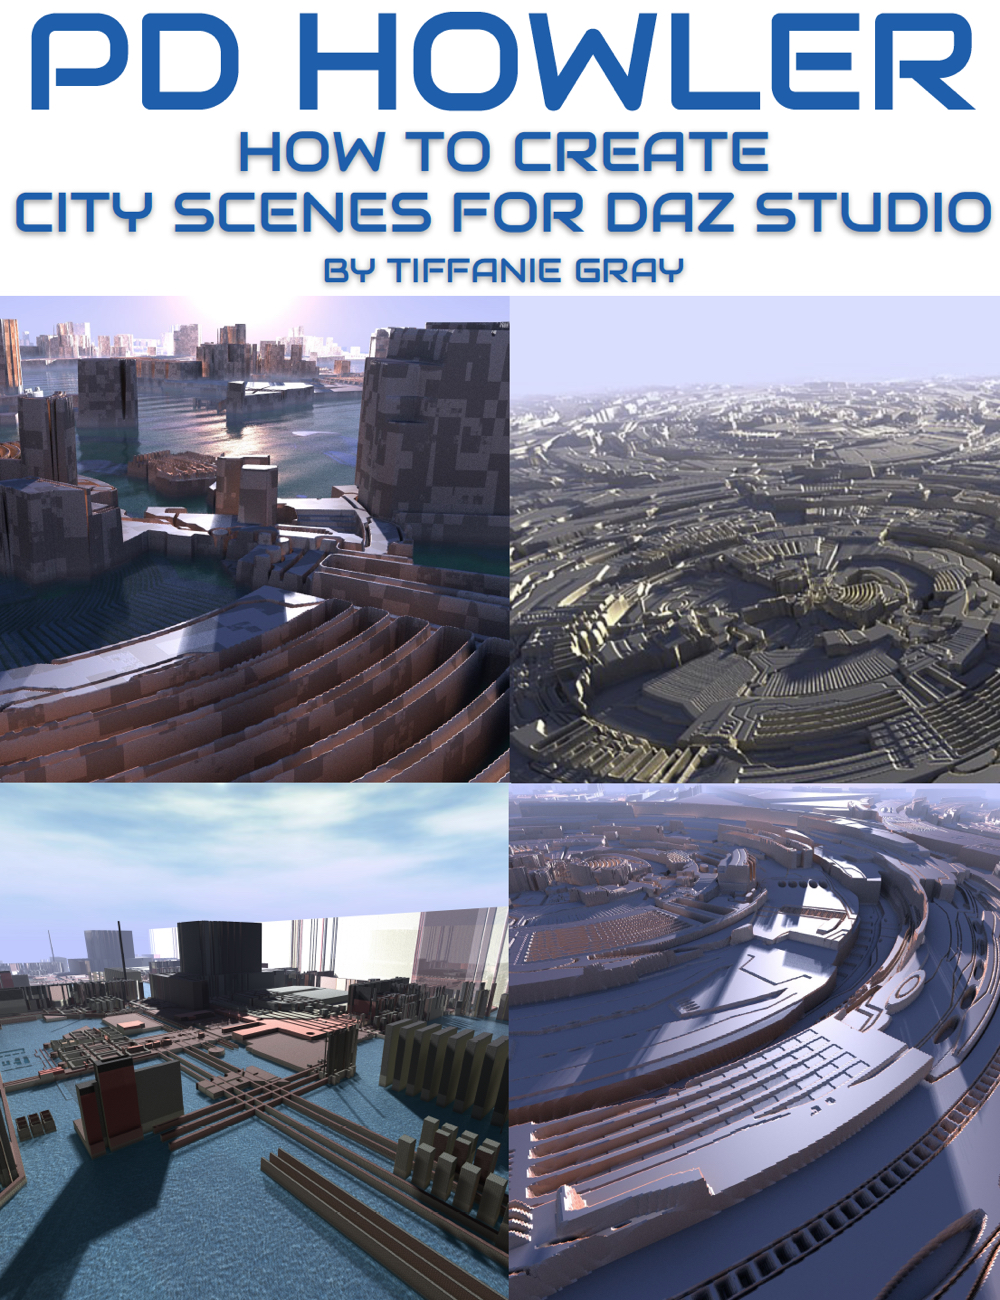 How to Create City Scenes for Daz Studio in PD Howler by: Digital Art Live, 3D Models by Daz 3D